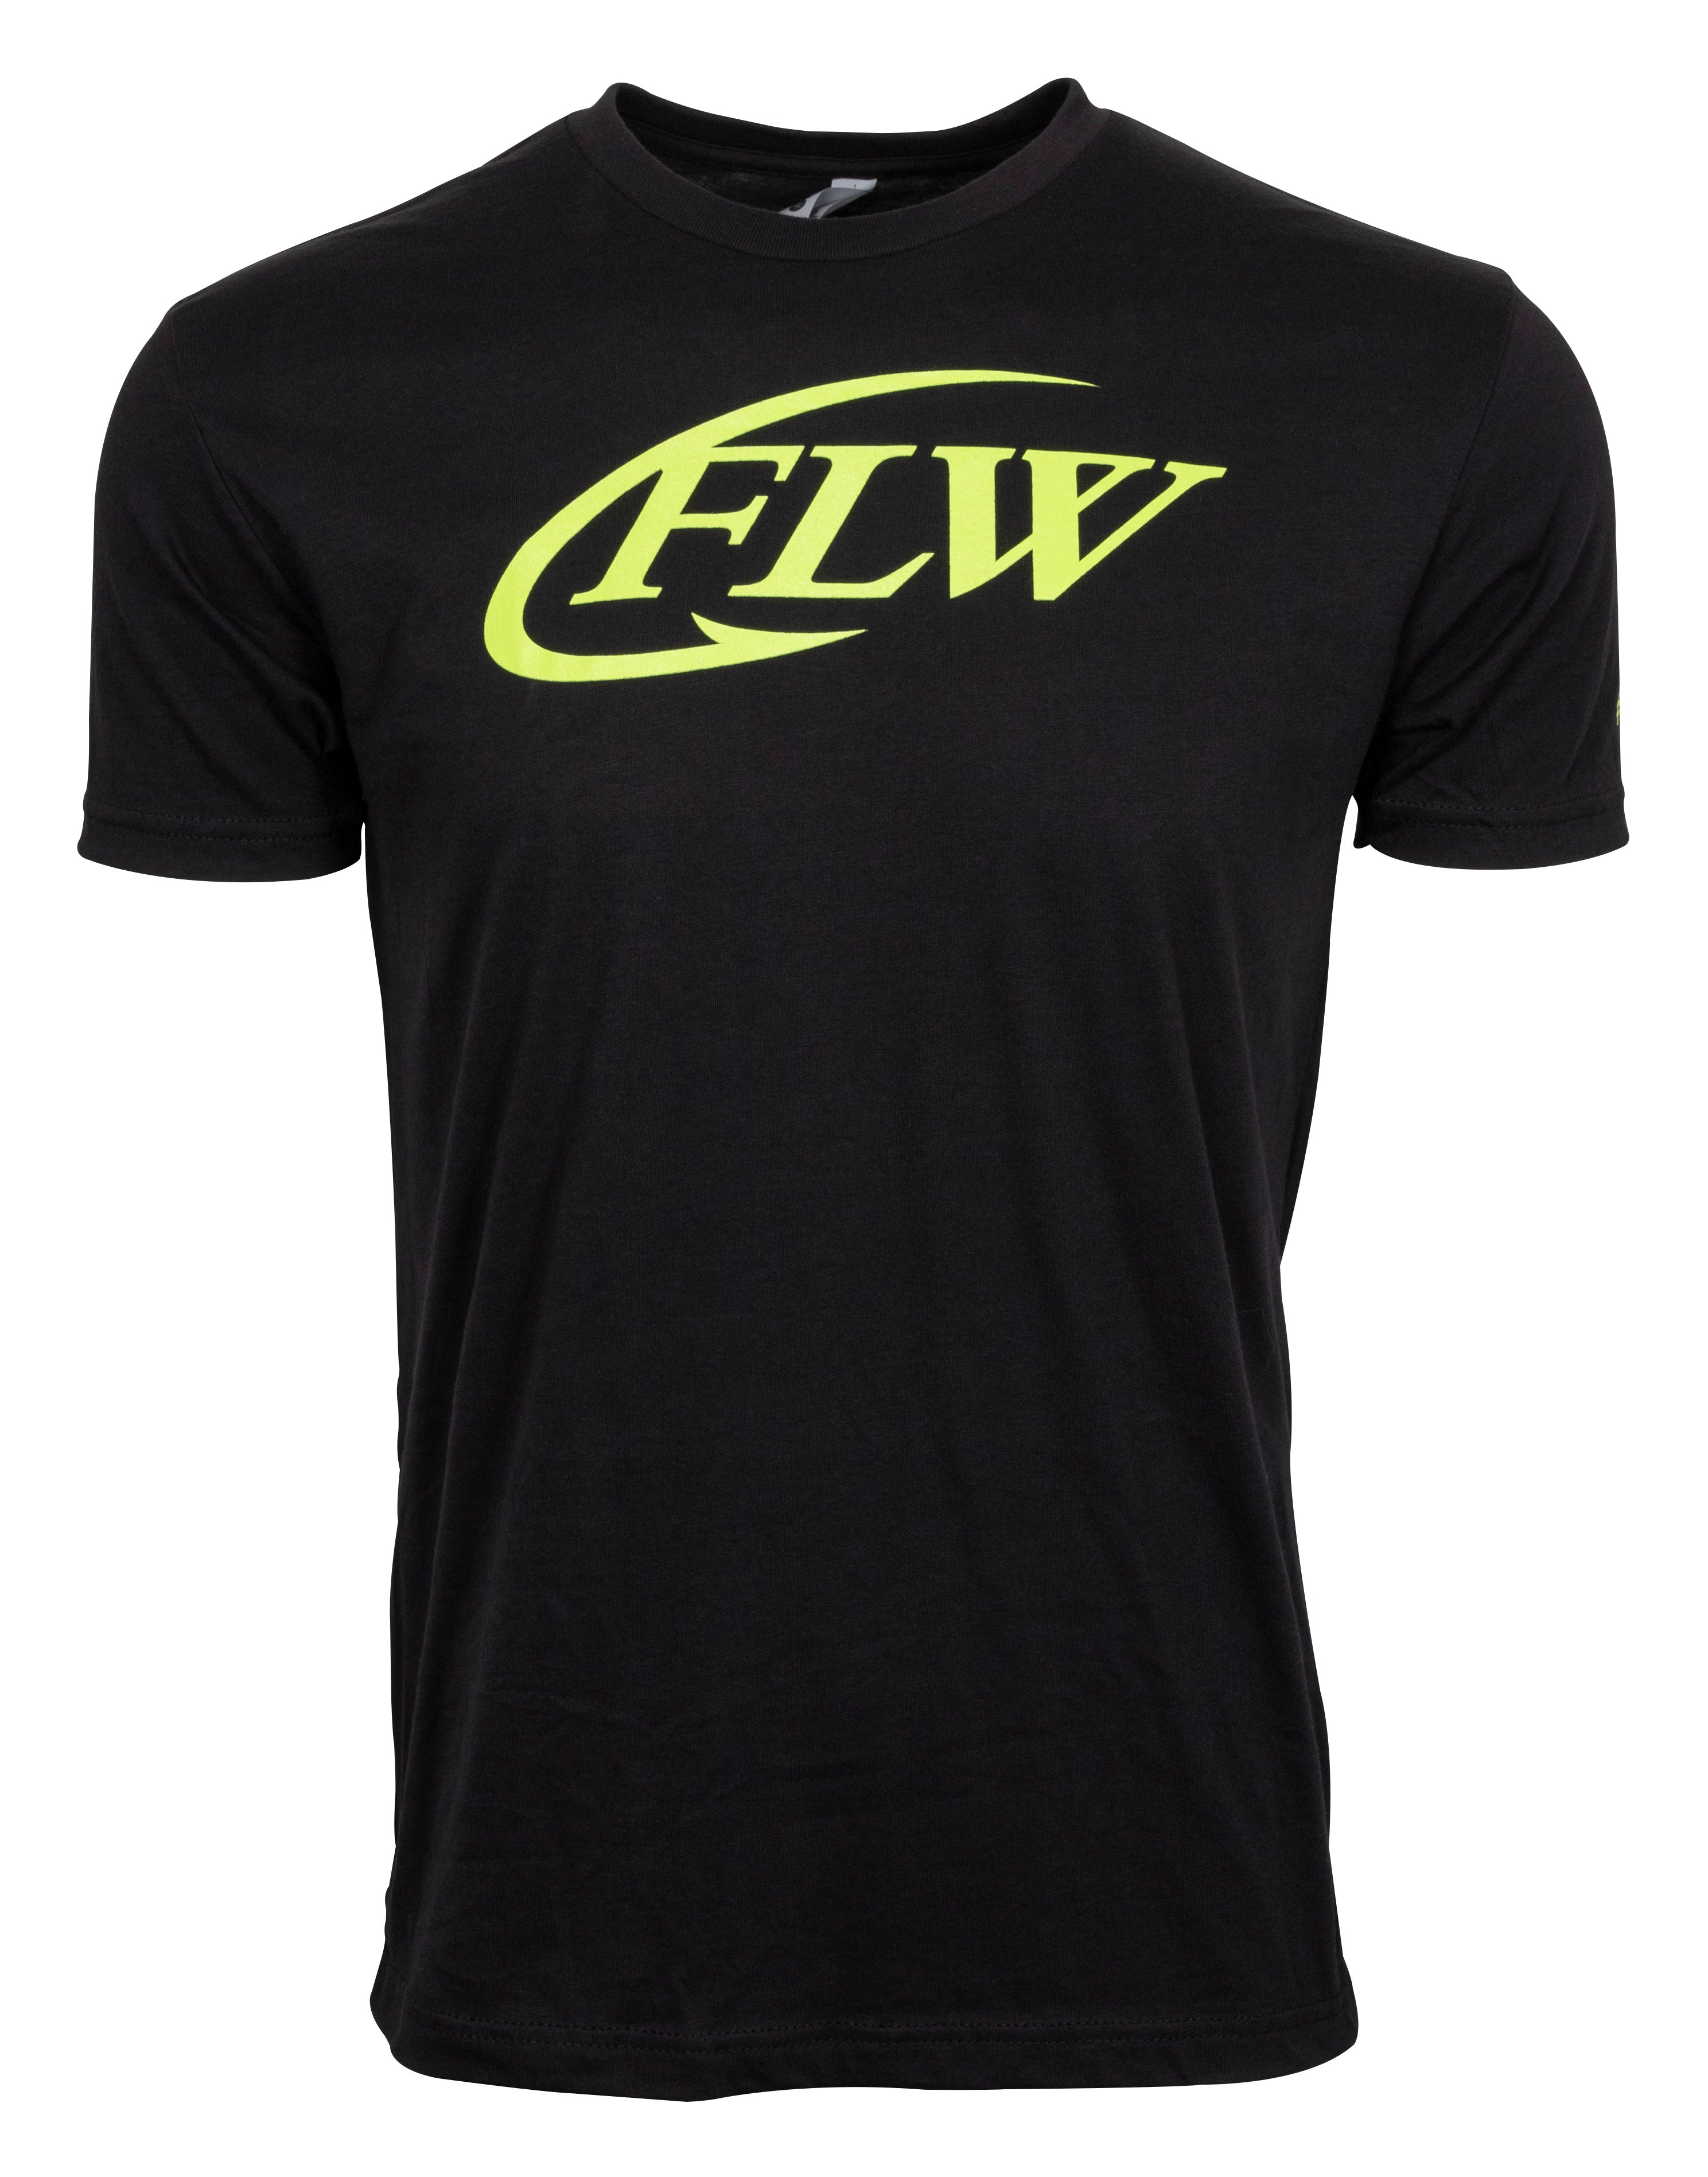 #IAMFLW Black Short Sleeve FLW Tee